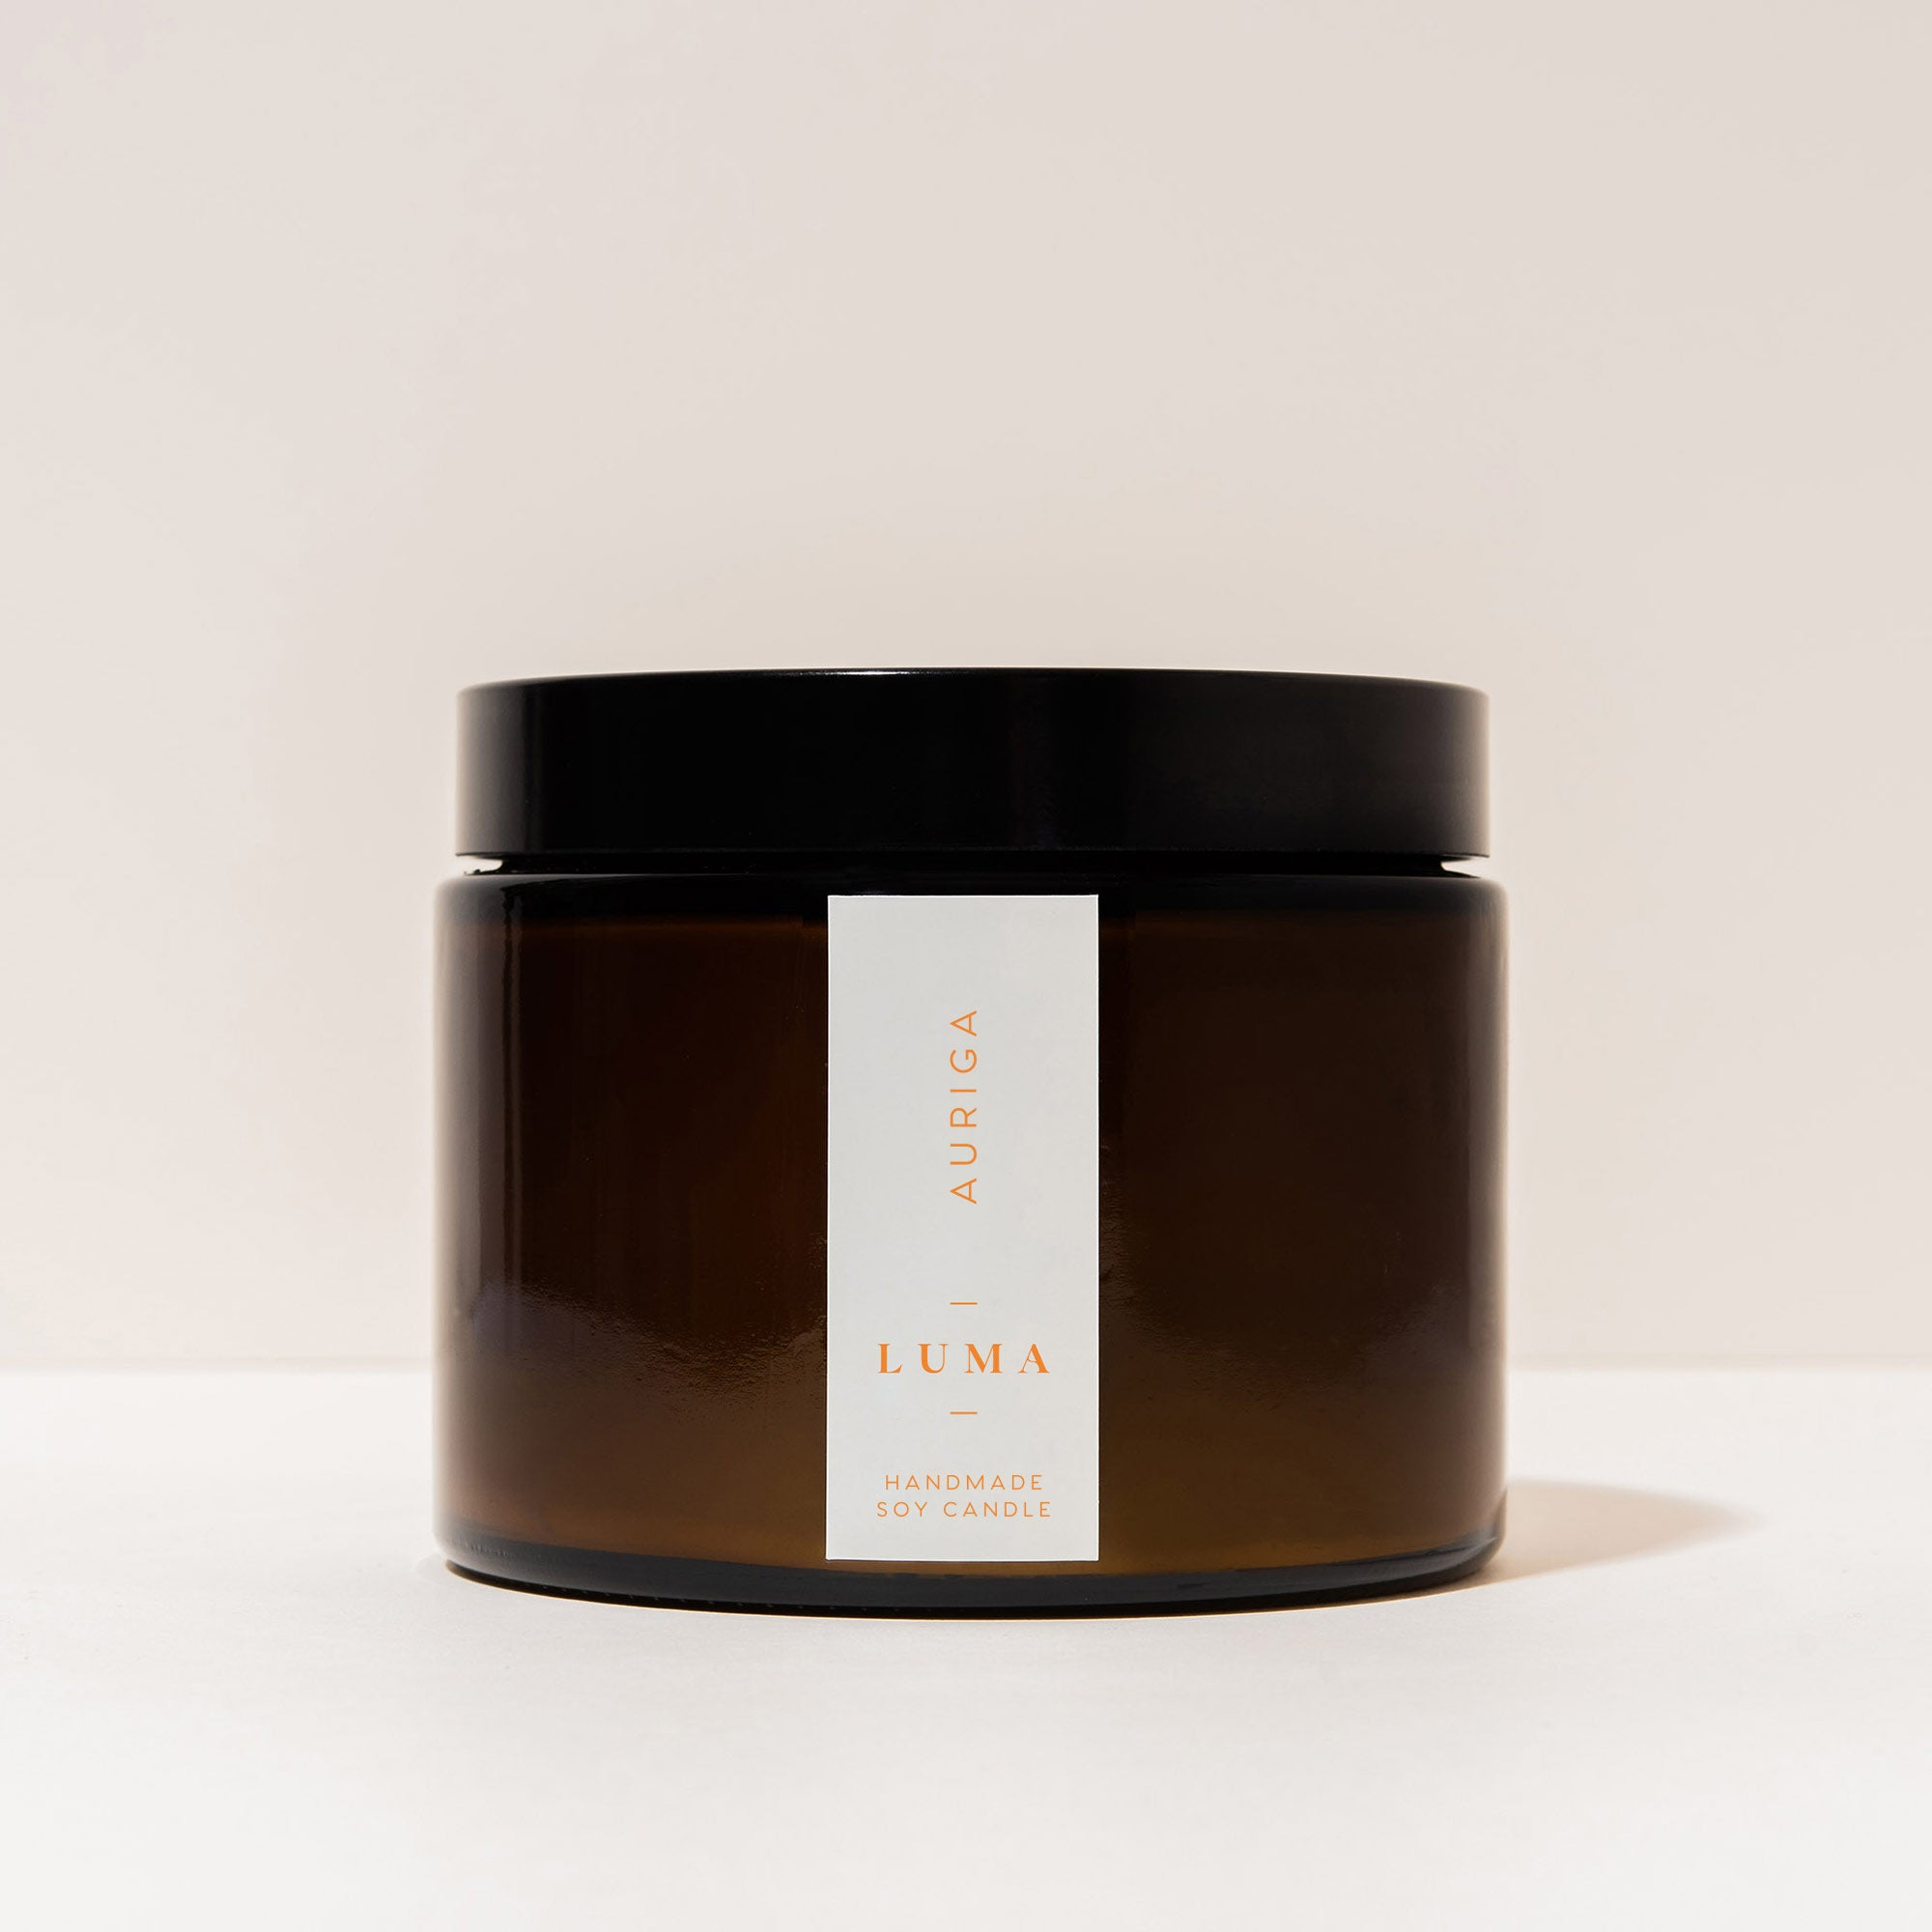 Auriga | Handmade Soy Wax Candle - Luma Candles